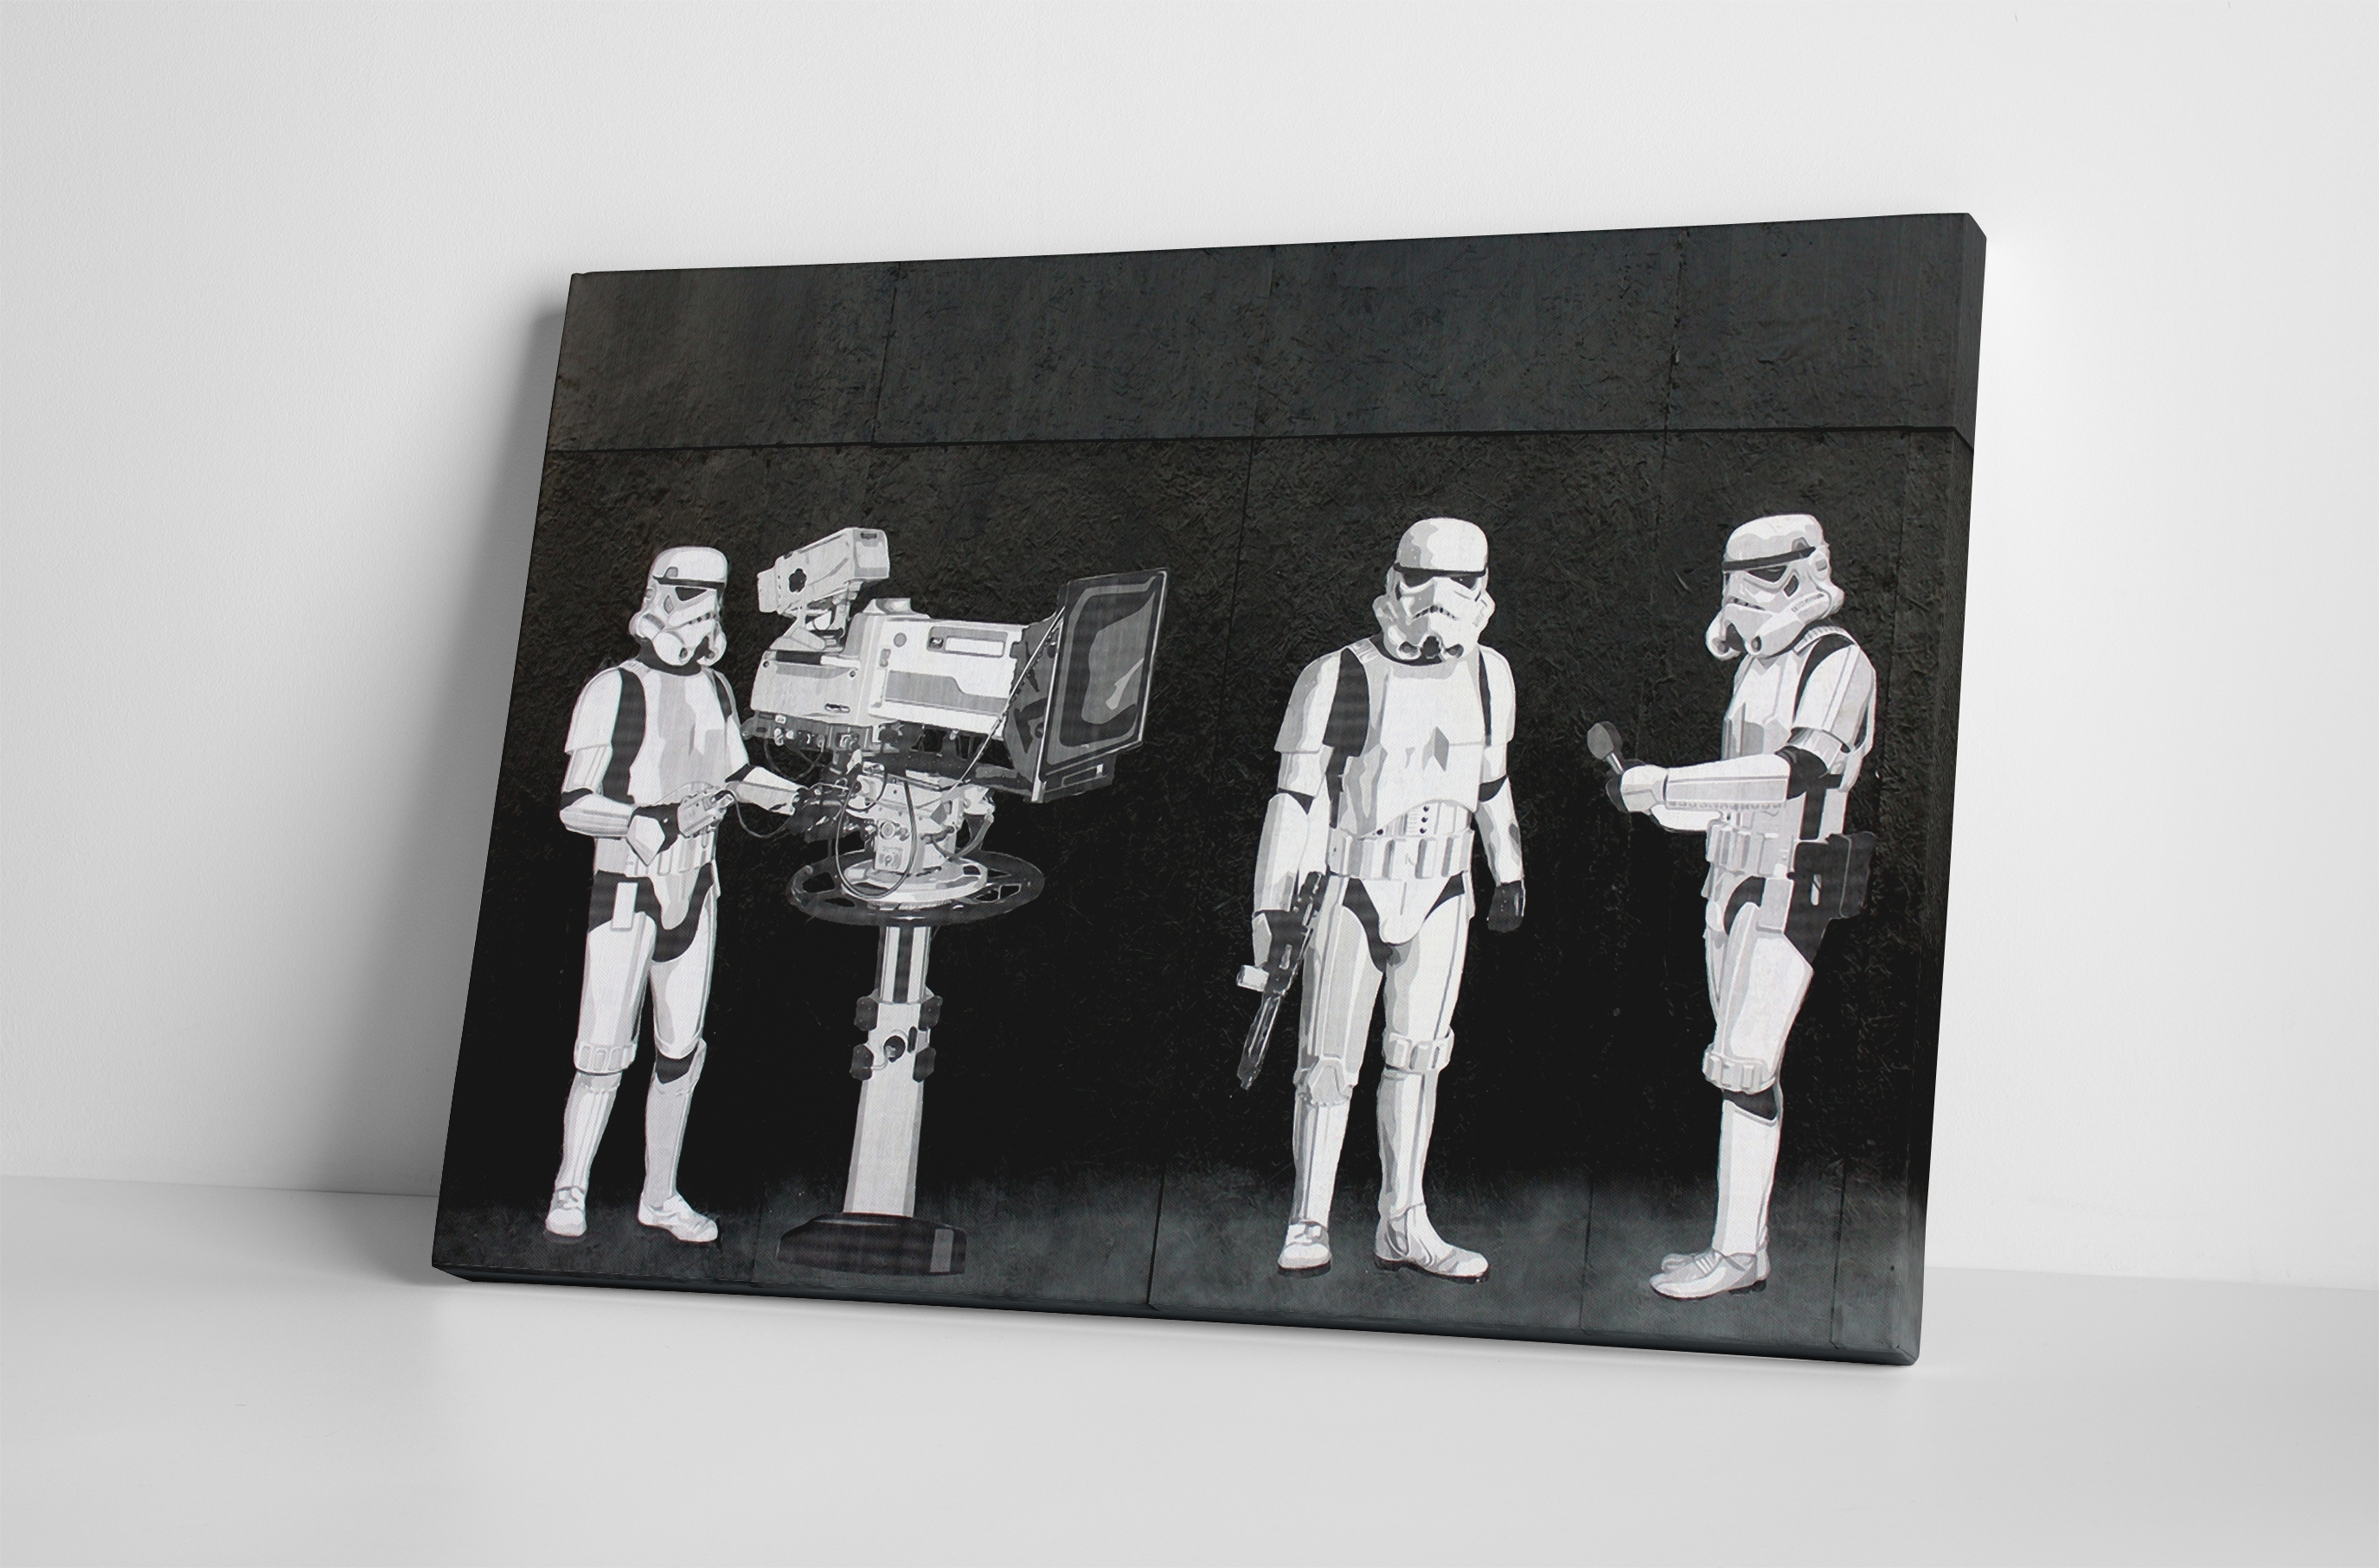 Well Known Movies Canvas Wall Art With Regard To Banksy Stormtroopers Filming Oscars Canvas Wall Art (View 15 of 15)